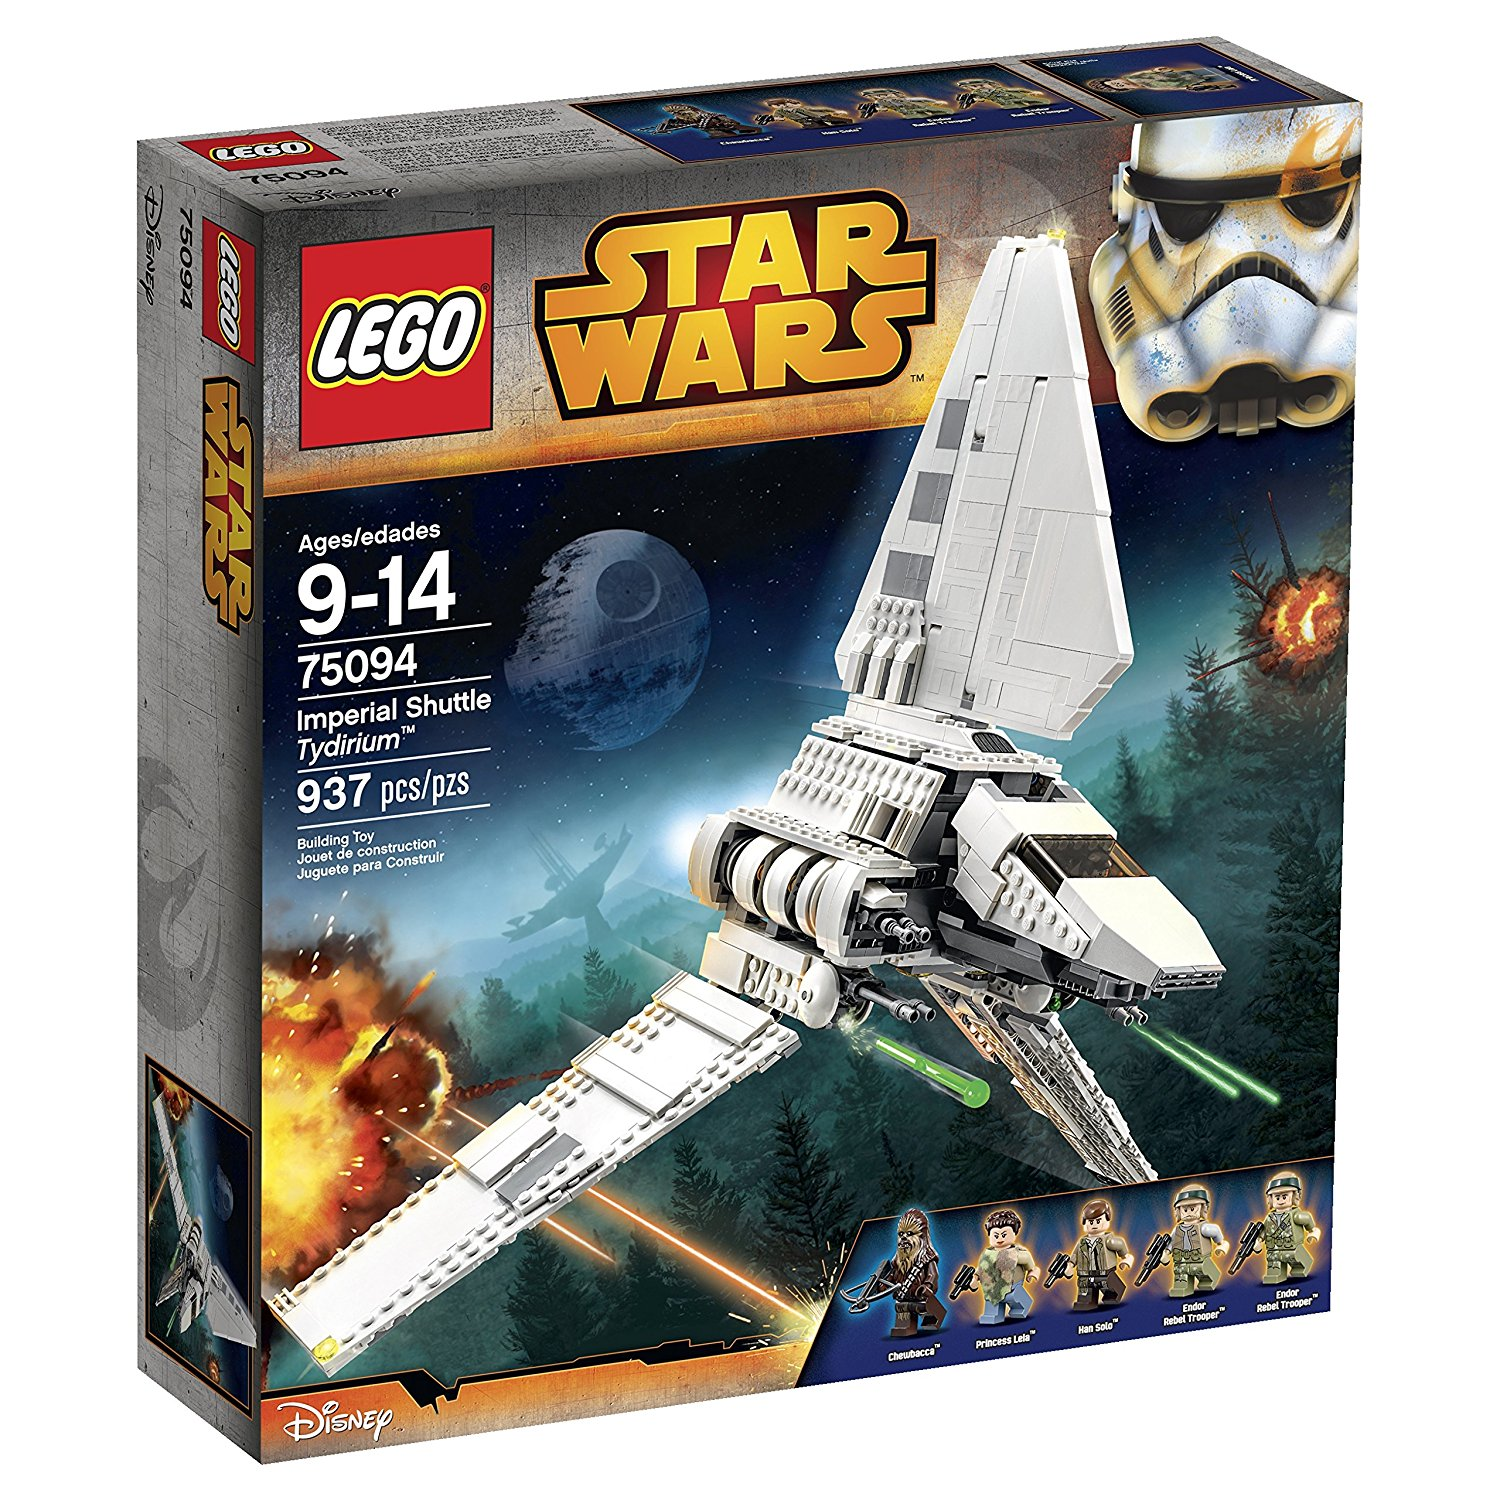 Do you want to start your own LEGO Star Wars collection?